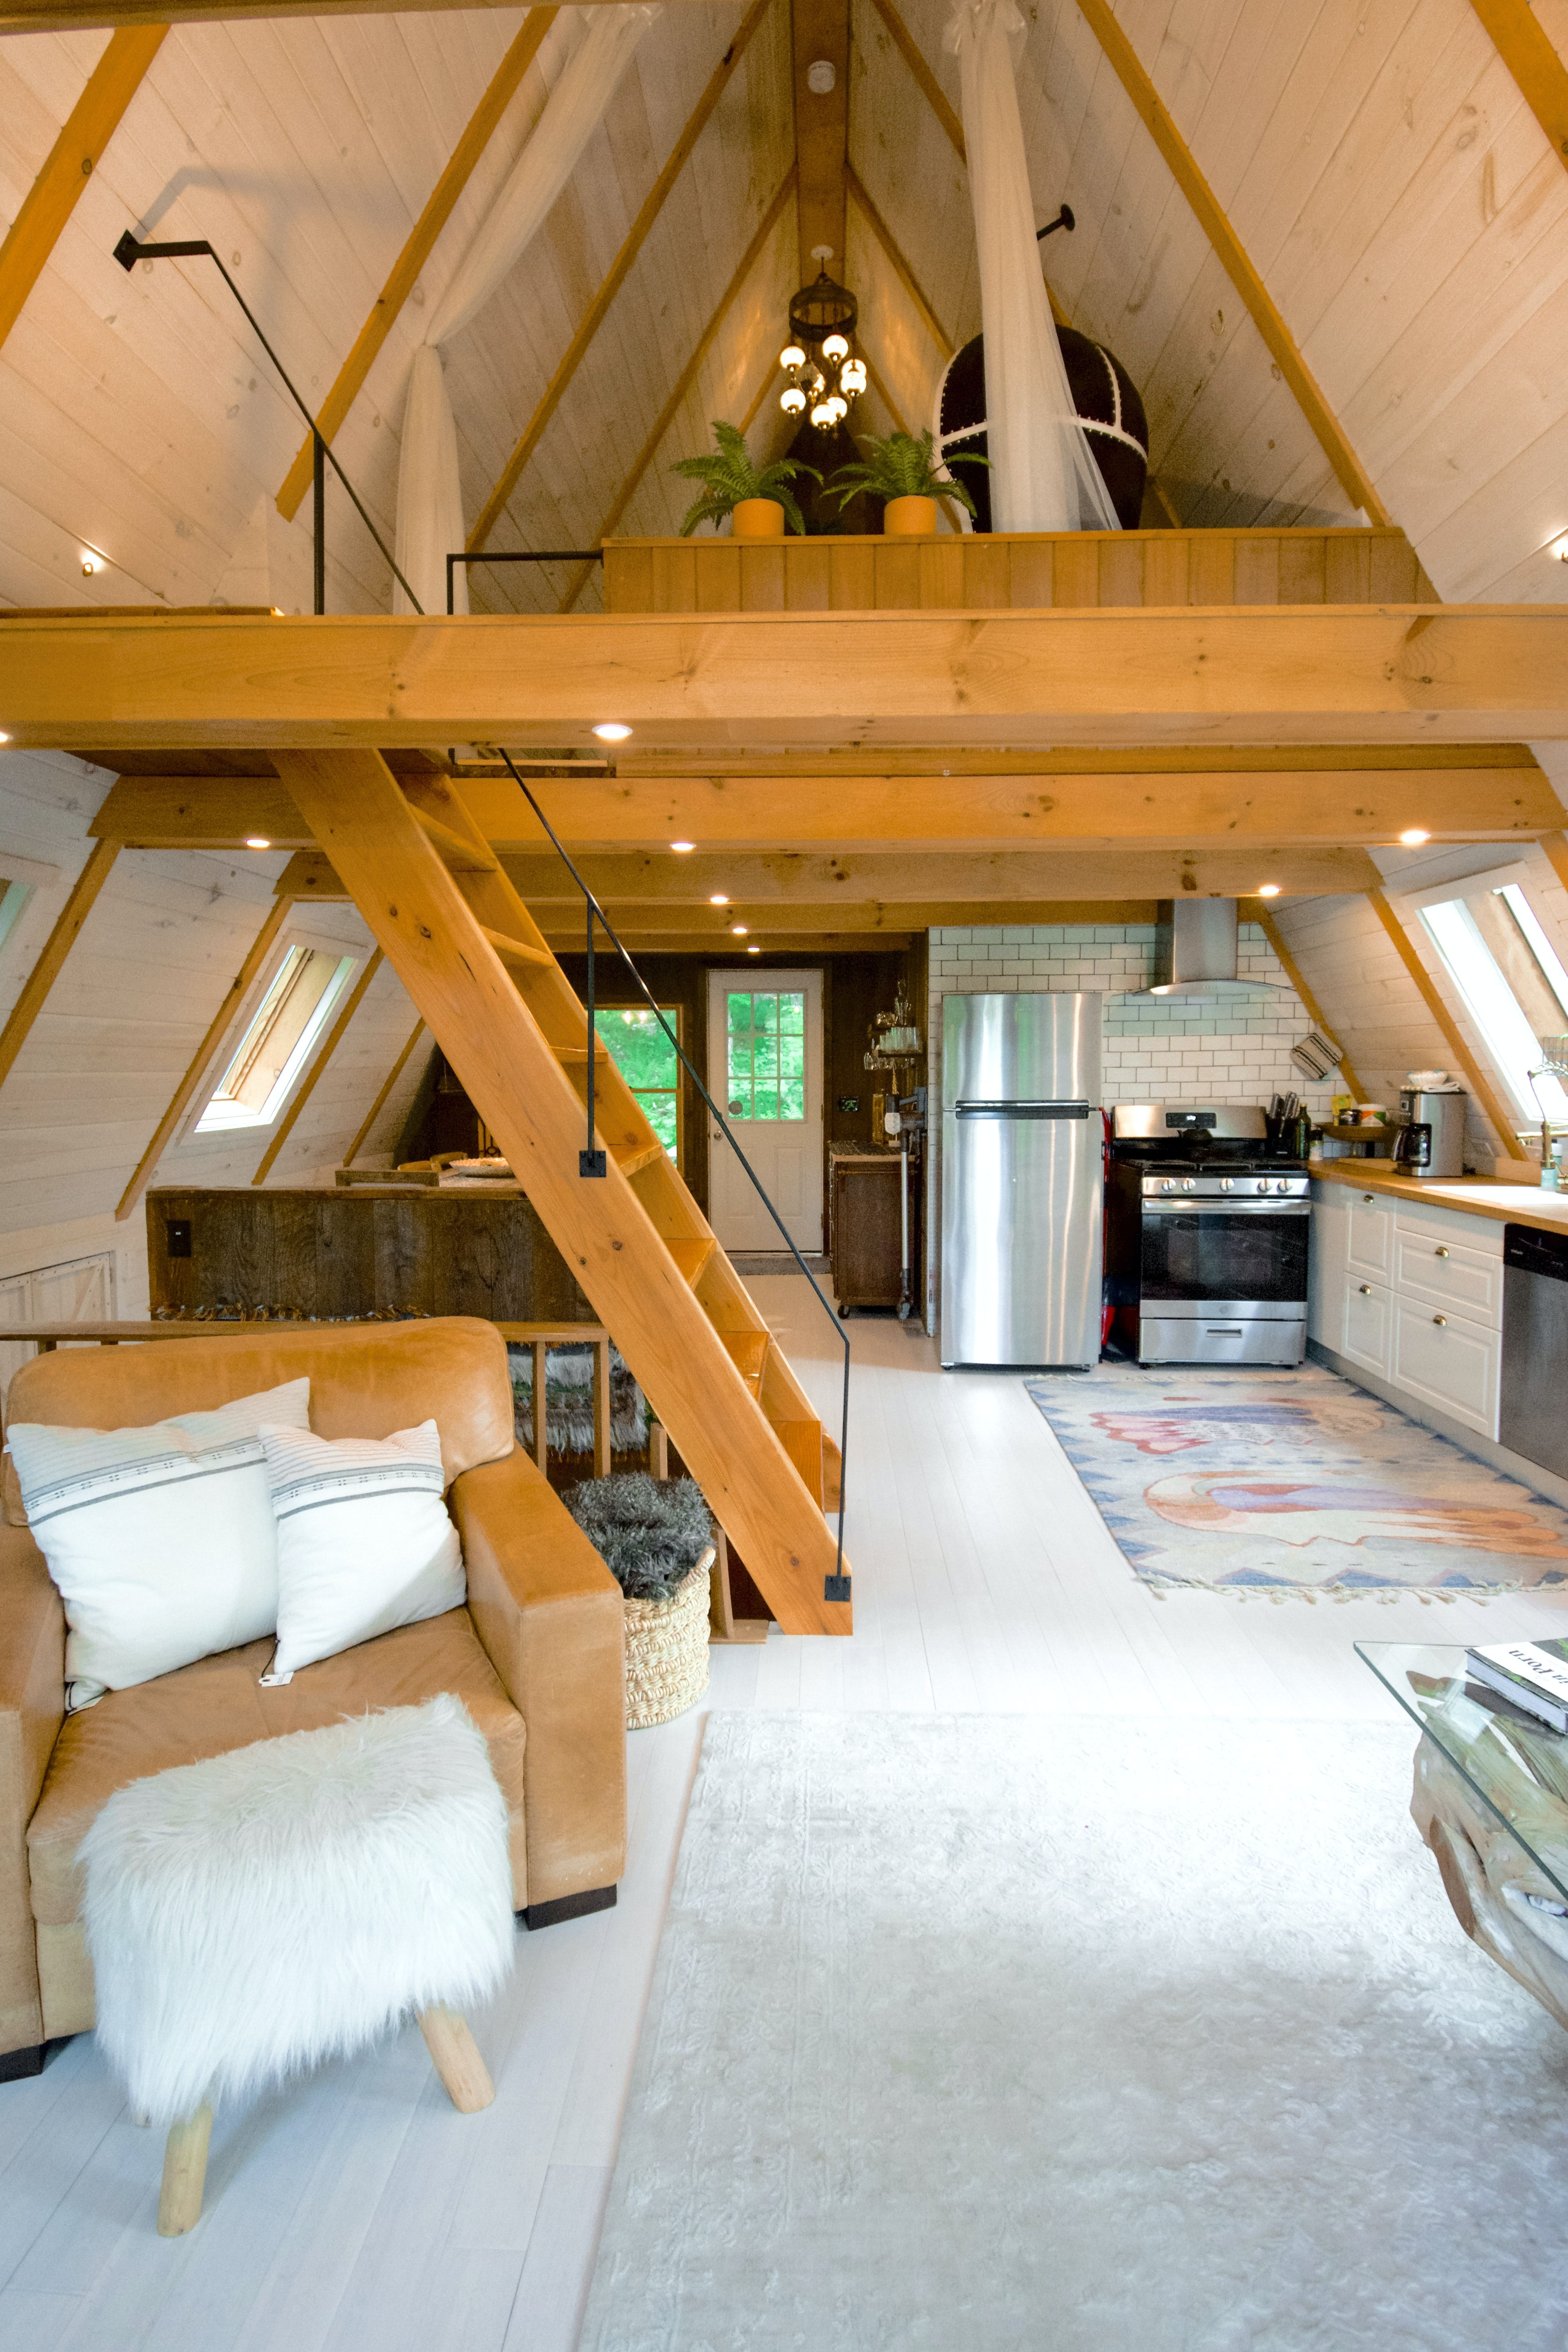 Photo of Gorgeous Tiny home inspired by Scandinavian design!